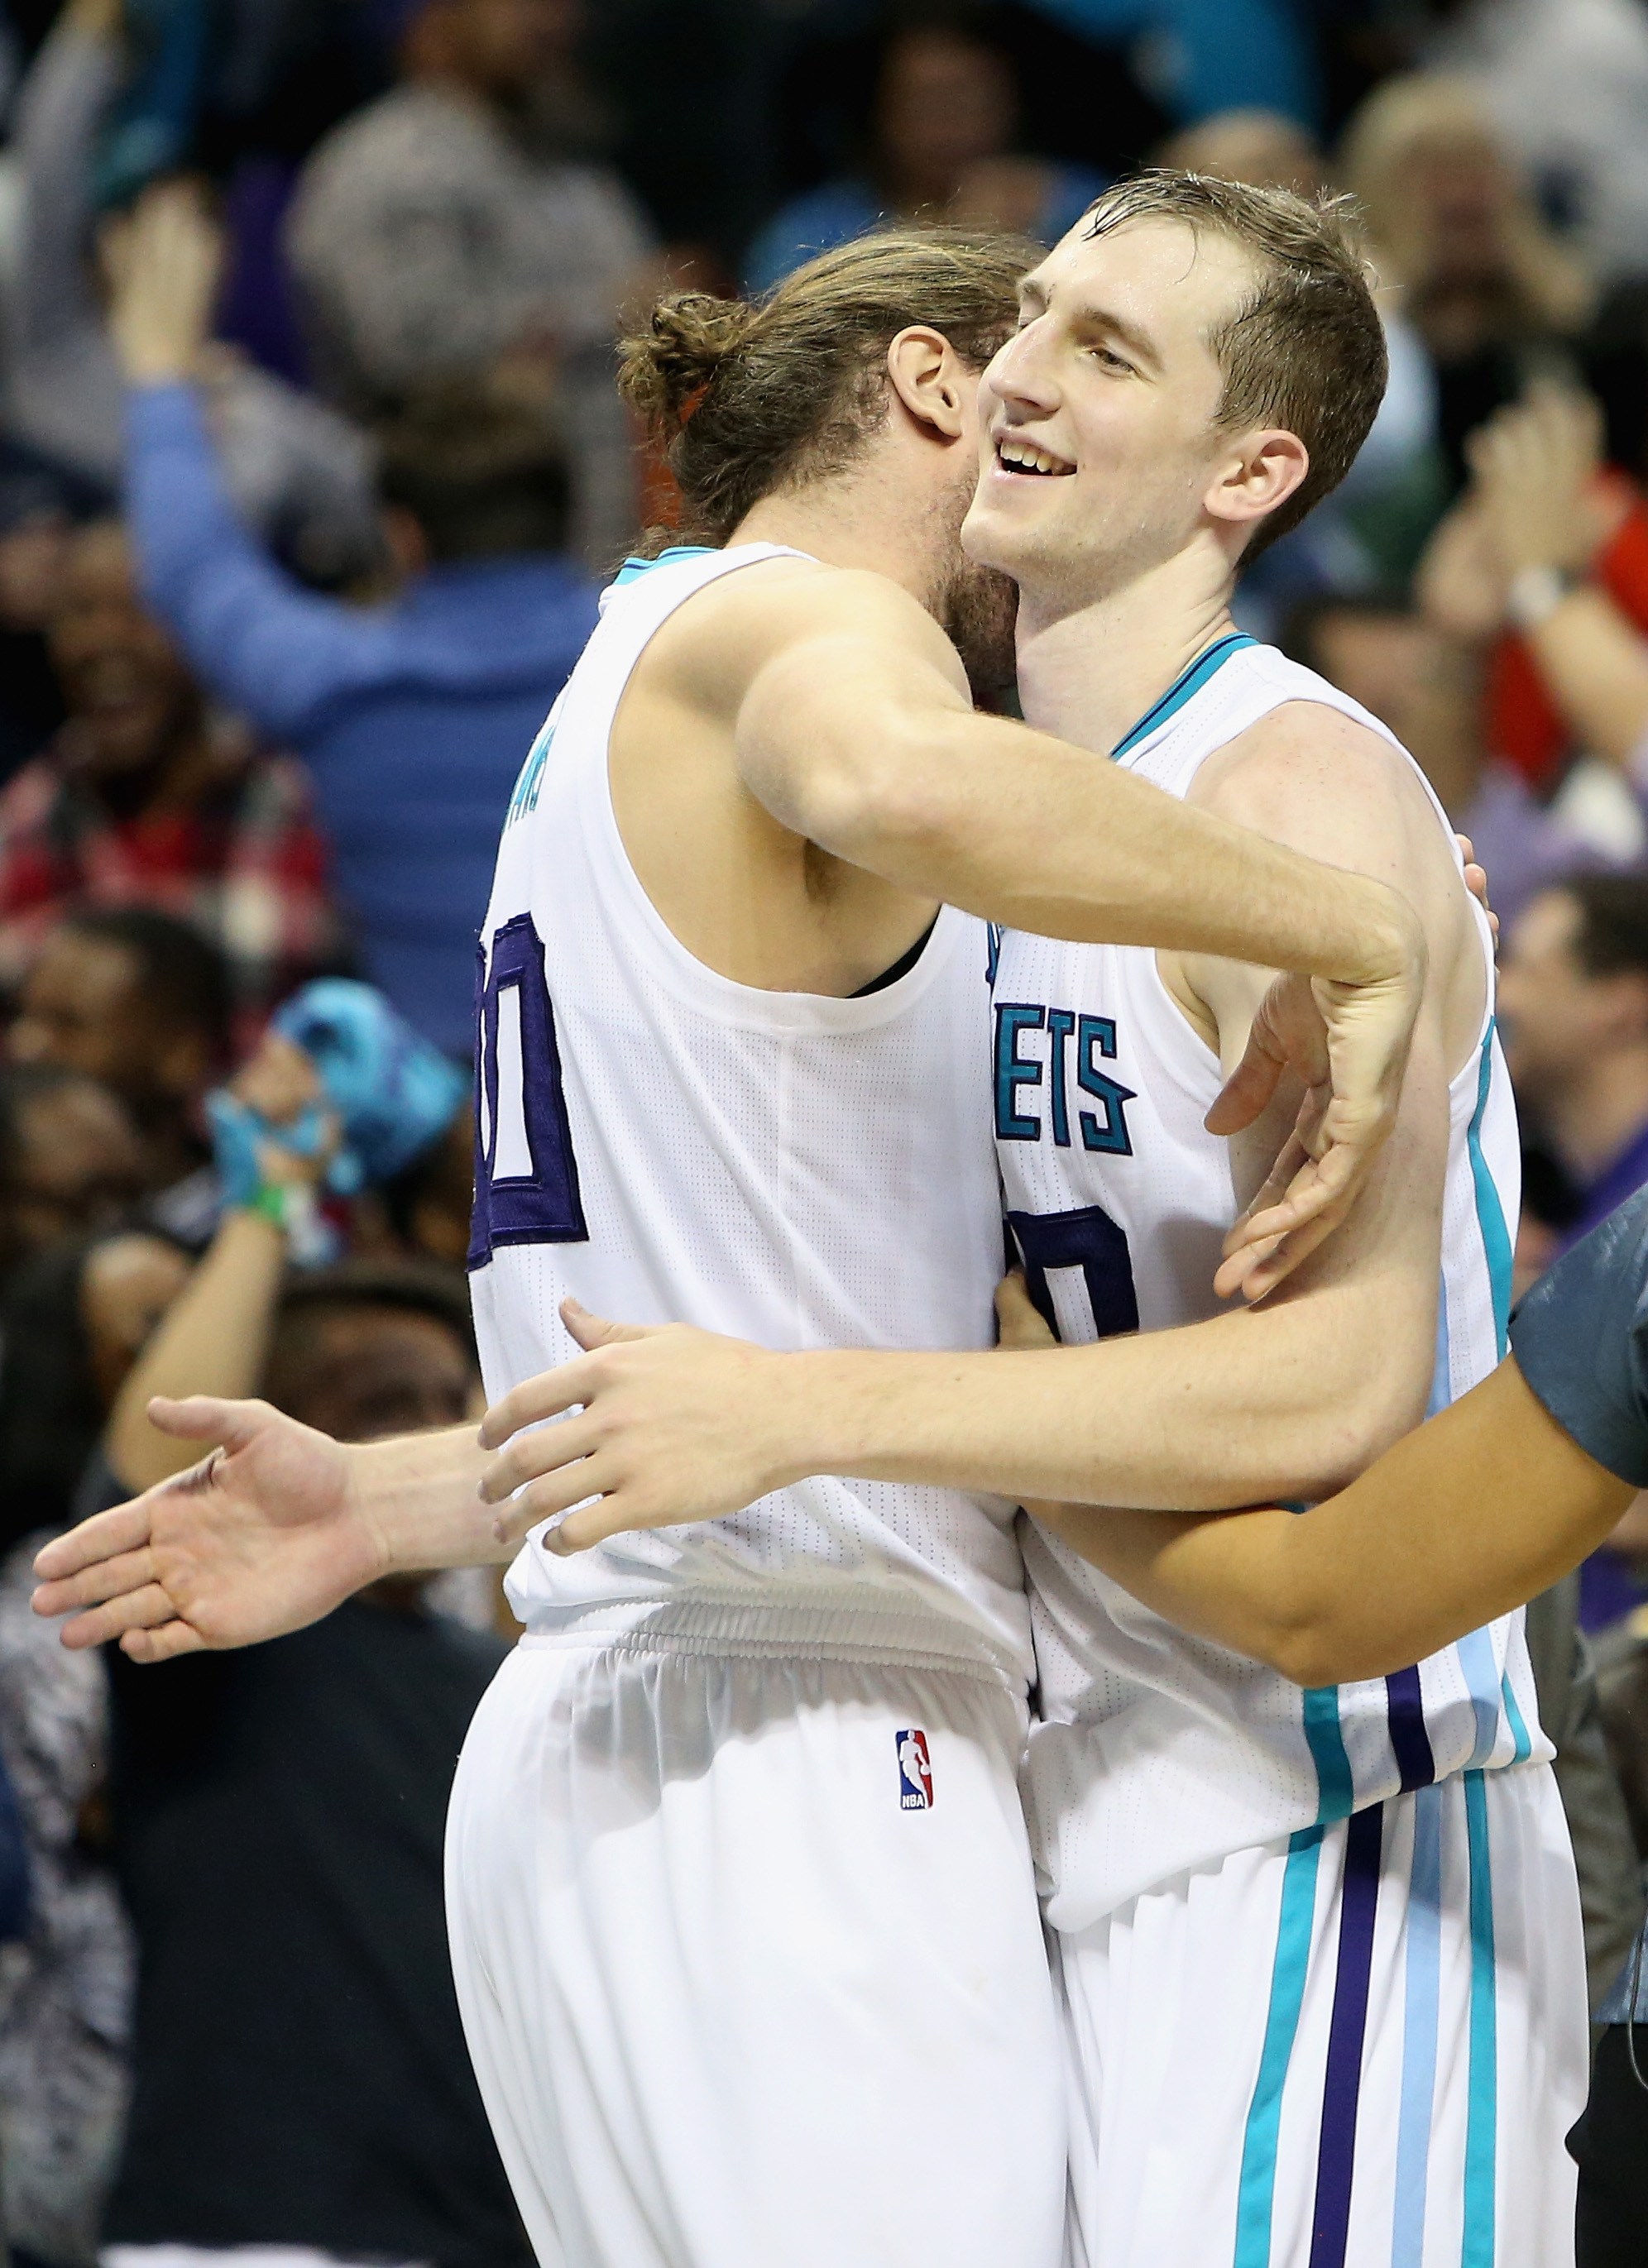 CHARLOTTE, NC - NOVEMBER 11:  Cody Zeller #40 celebrates with teammate Spencer Hawes #00 of the Charlotte Hornets after hitting the game winning shot to defeat the New York Knicks 95-93 during their game at Time Warner Cable Arena on November 11, 2015 in